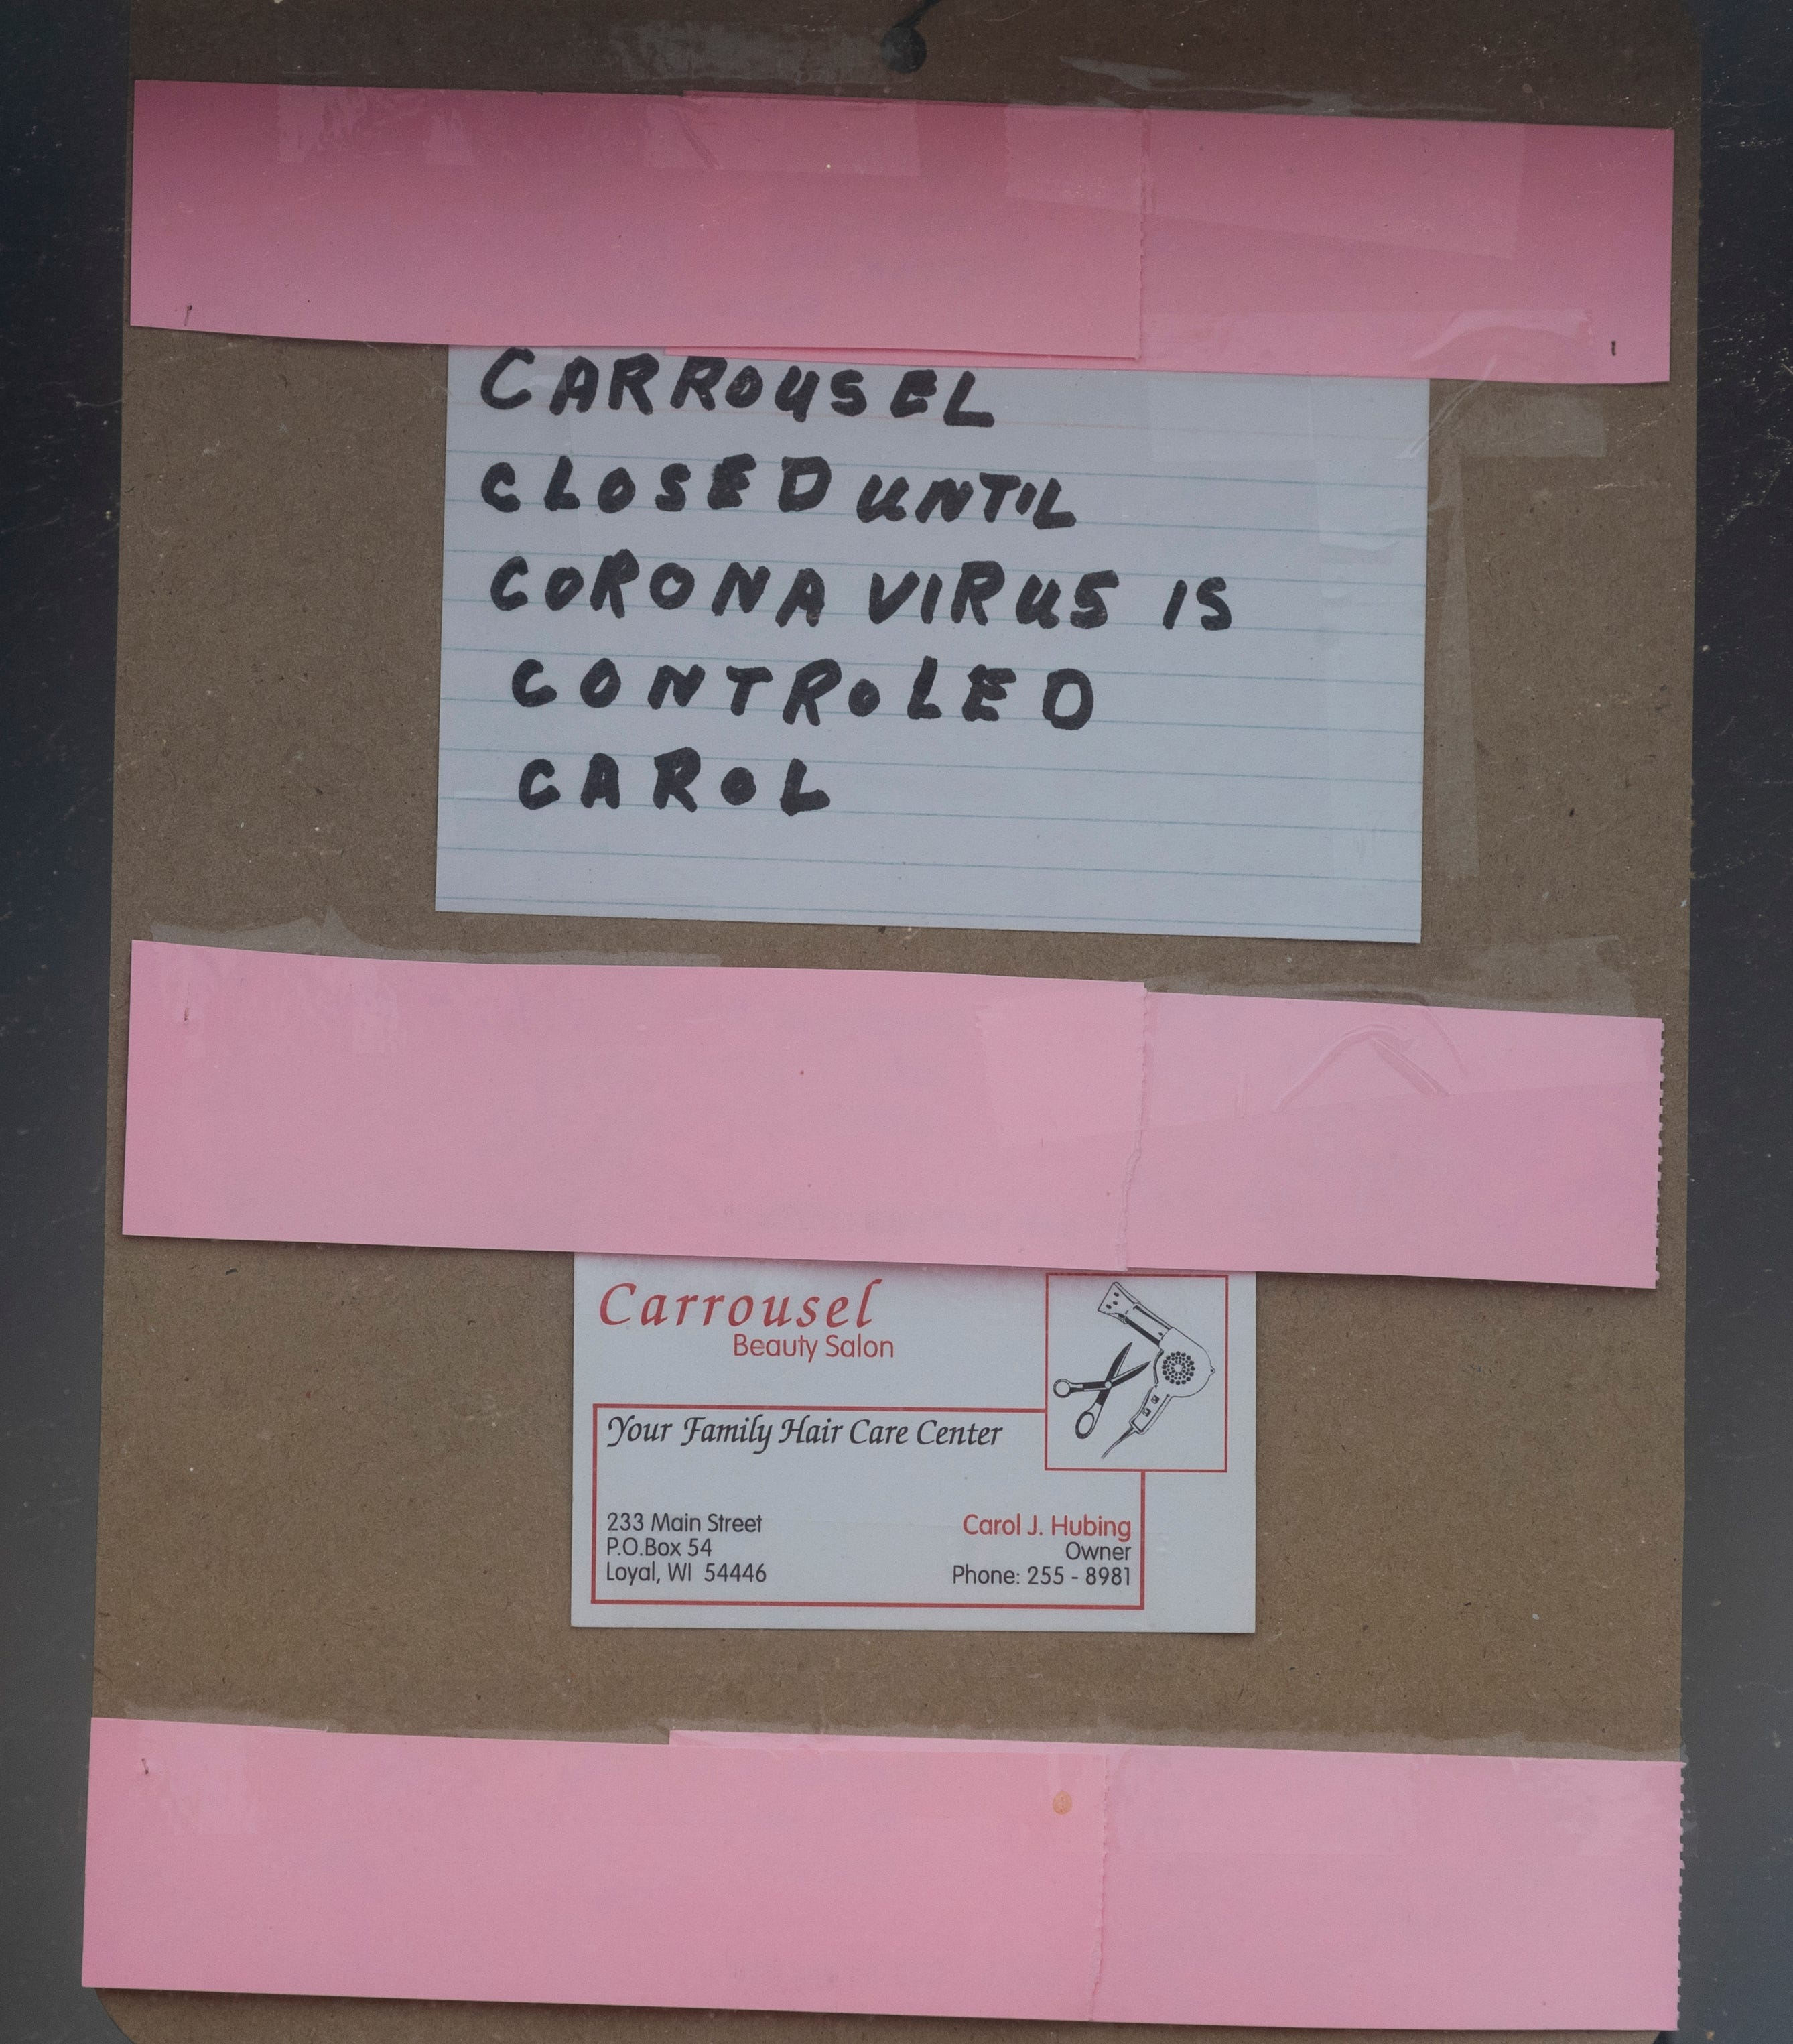 A sign on beauty salon in downtown Loyal tells of its closing due to the coronavirus pandemic.